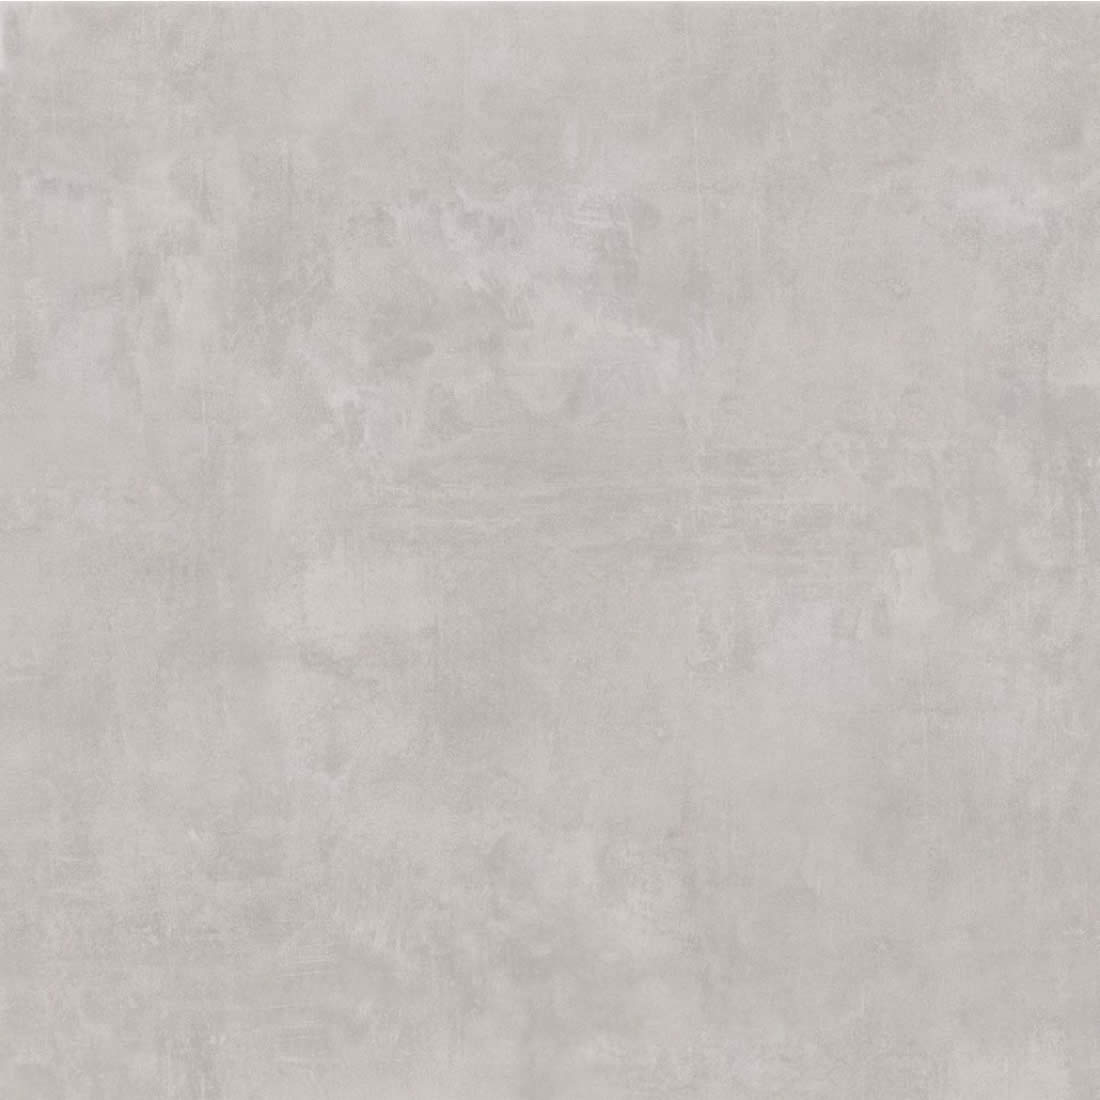 Porcelanato Via Rosa Metropole Cement Out 72 x 72 Ref. AR72040A